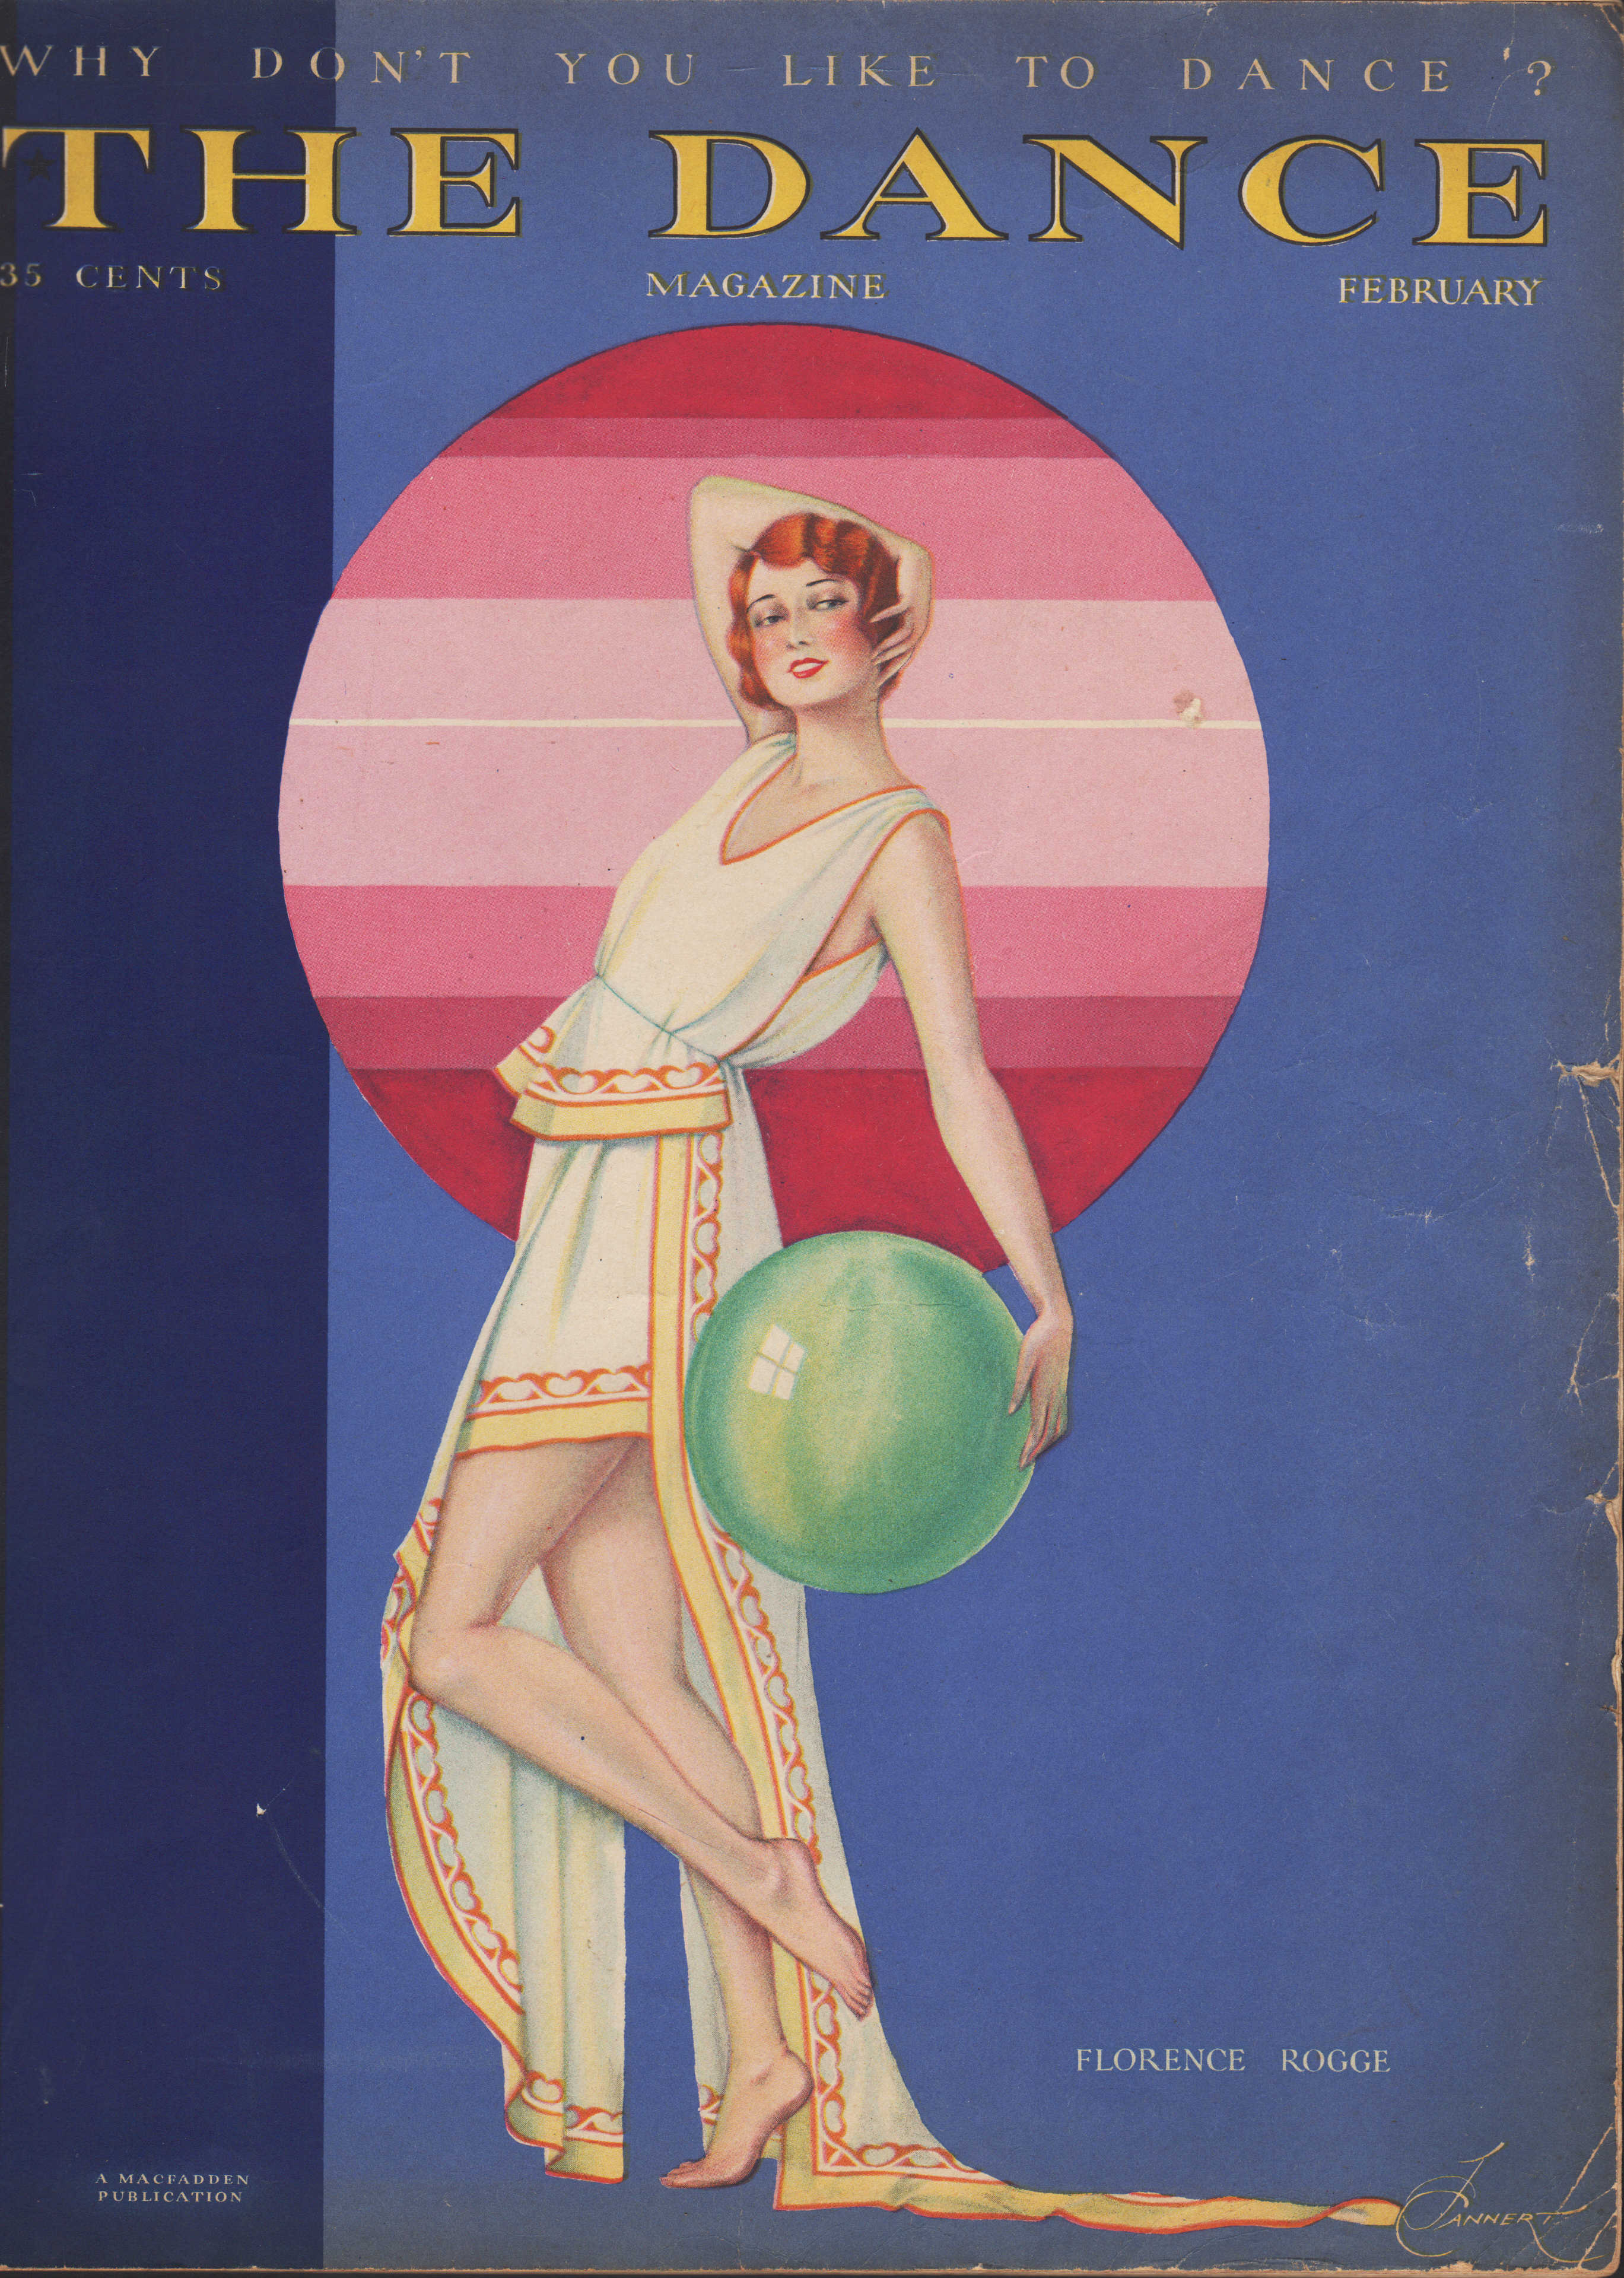 Image for The Dance Magazine, February 1930 Why Don't You Like to Dance?